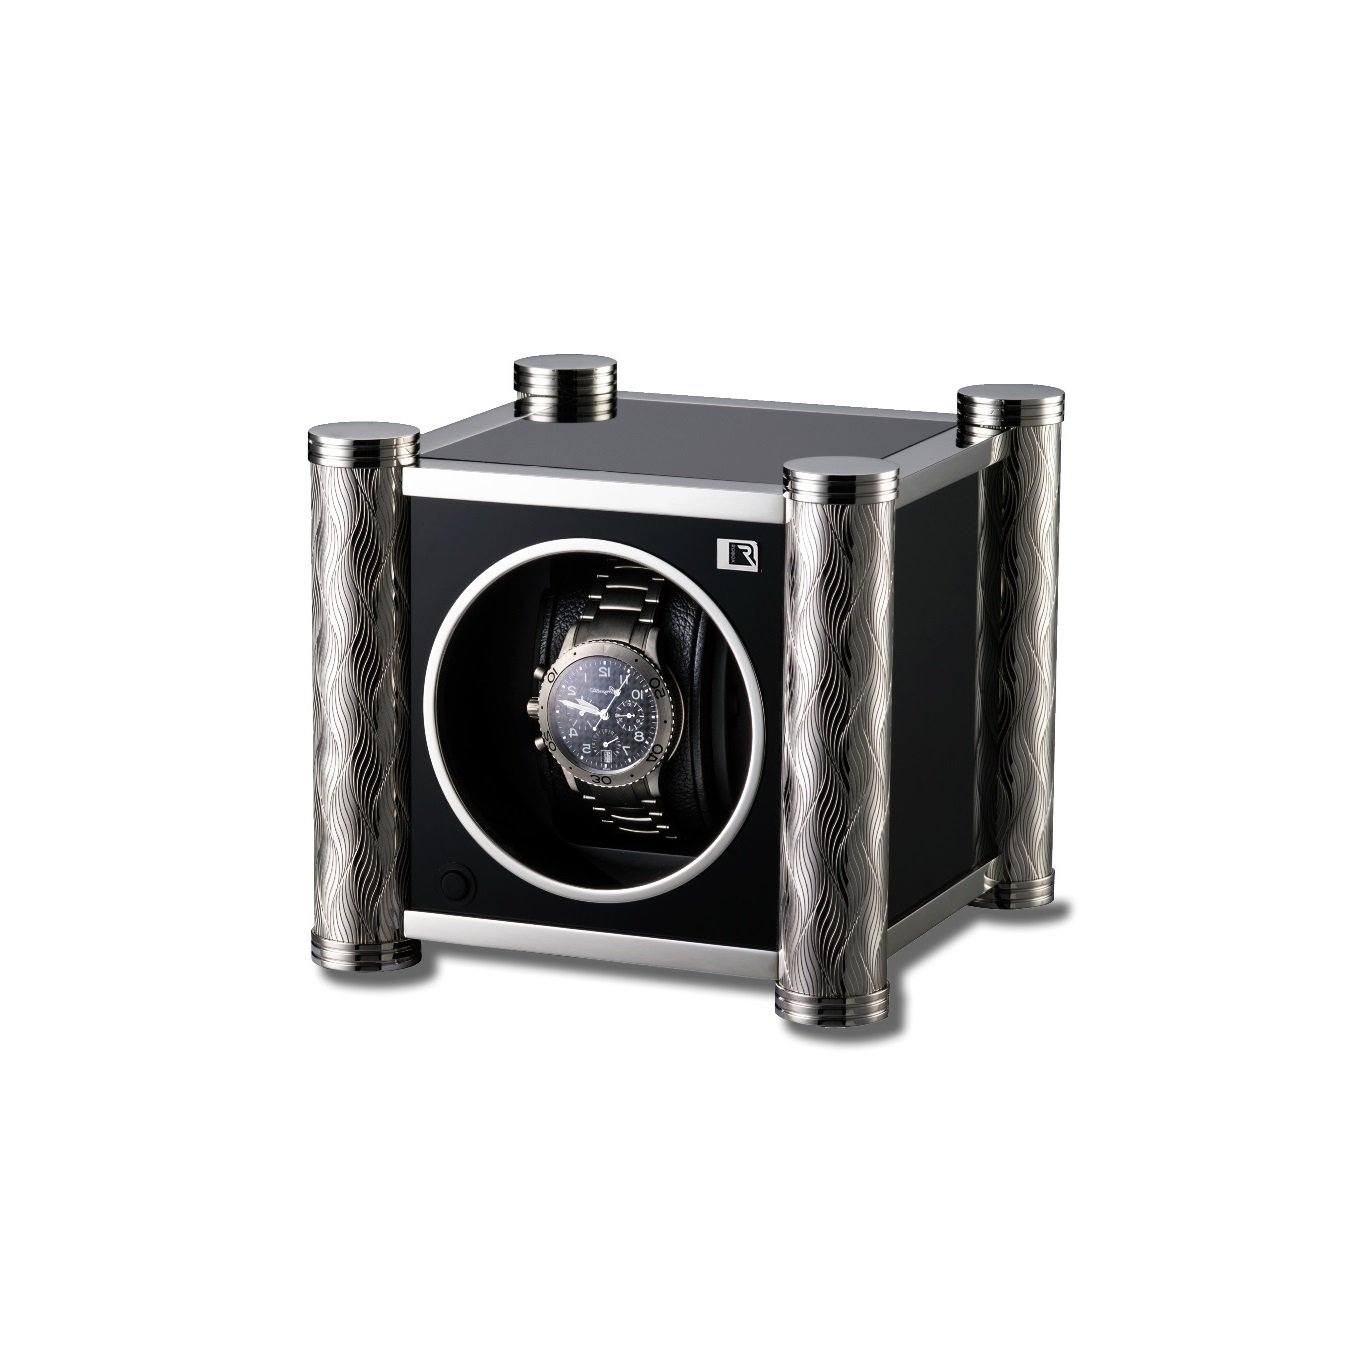 WATCH WINDER FOR 1 BOX SRW6001BS - Perfect for your automatic watch